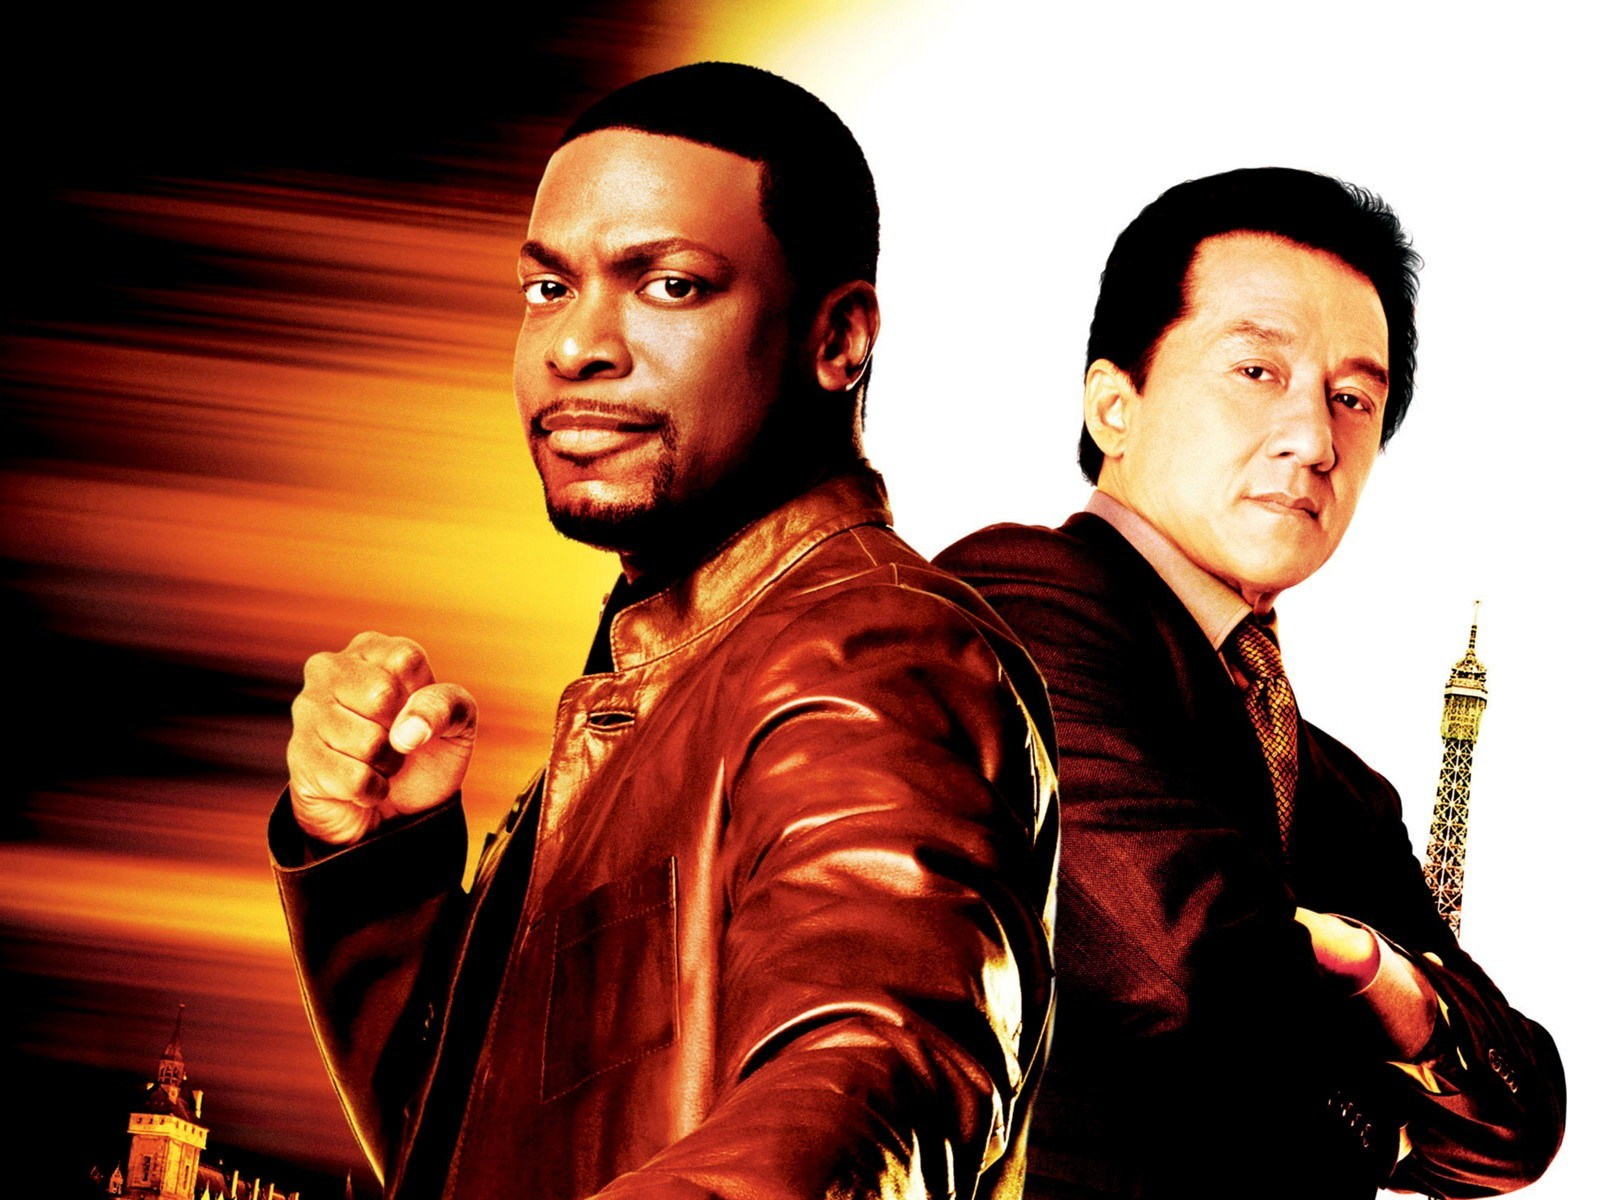 Jackie Chan And Chris Tucker Rush Hour 2 With jackie chan and chris